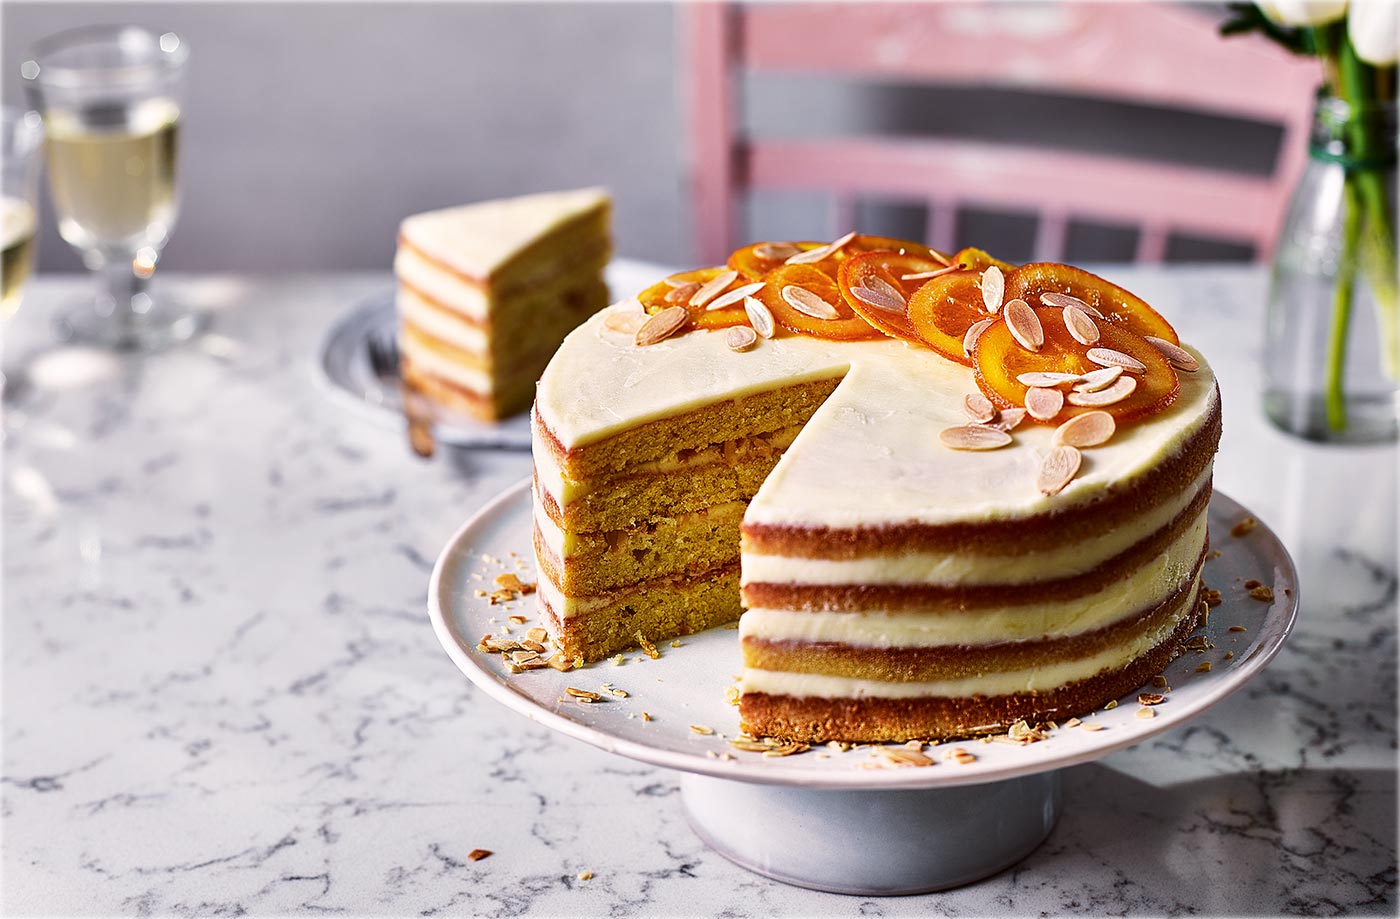 Orange cake with almond buttercream